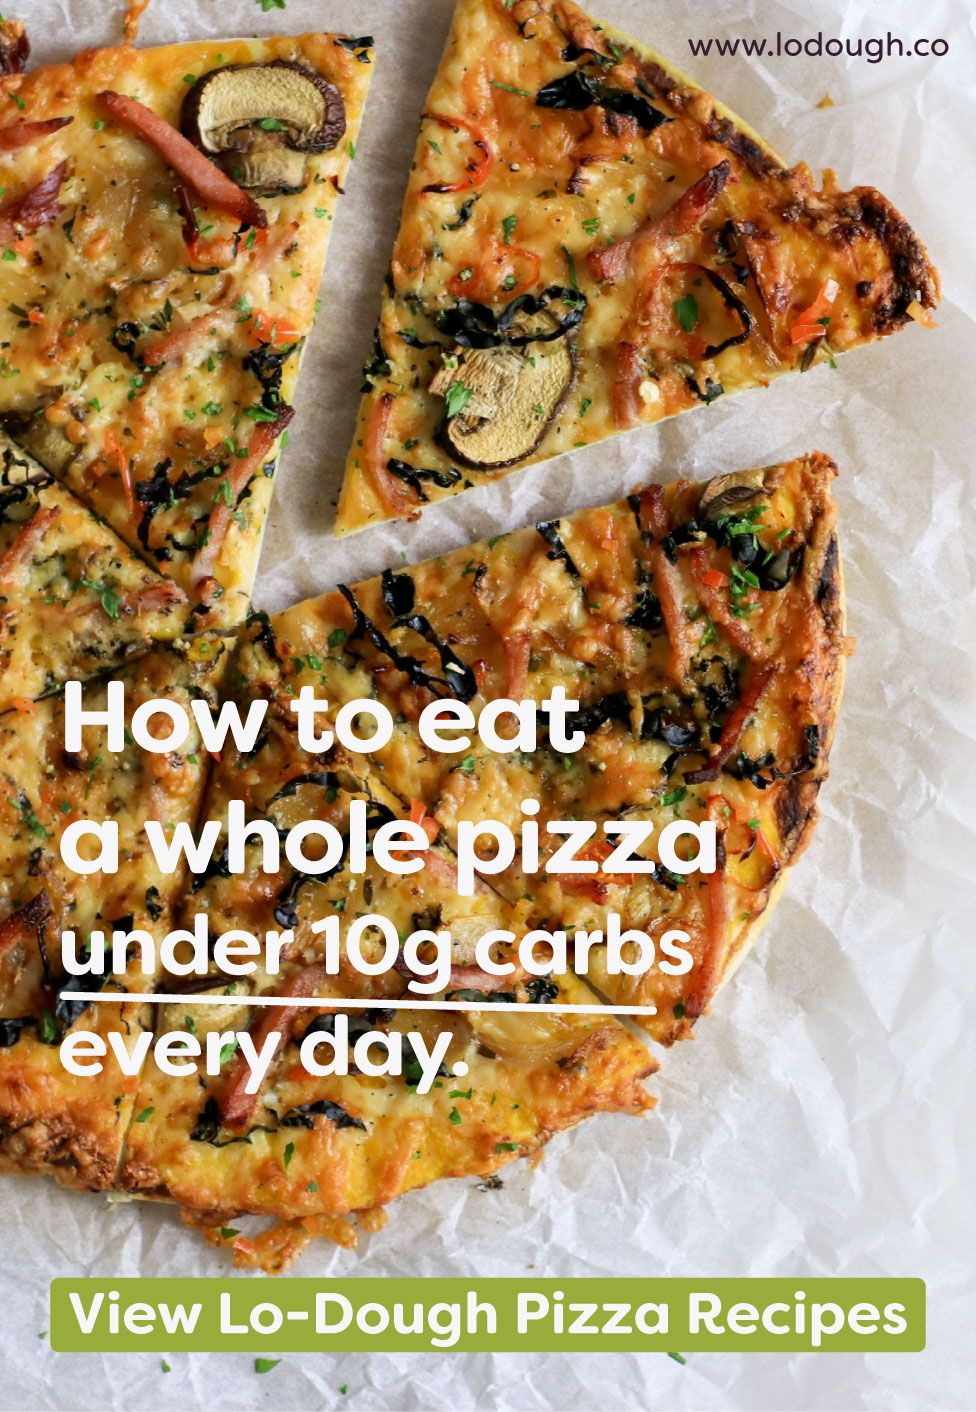 Low Carb Pizza Recipes With Lo Dough Food Recipes Pizza